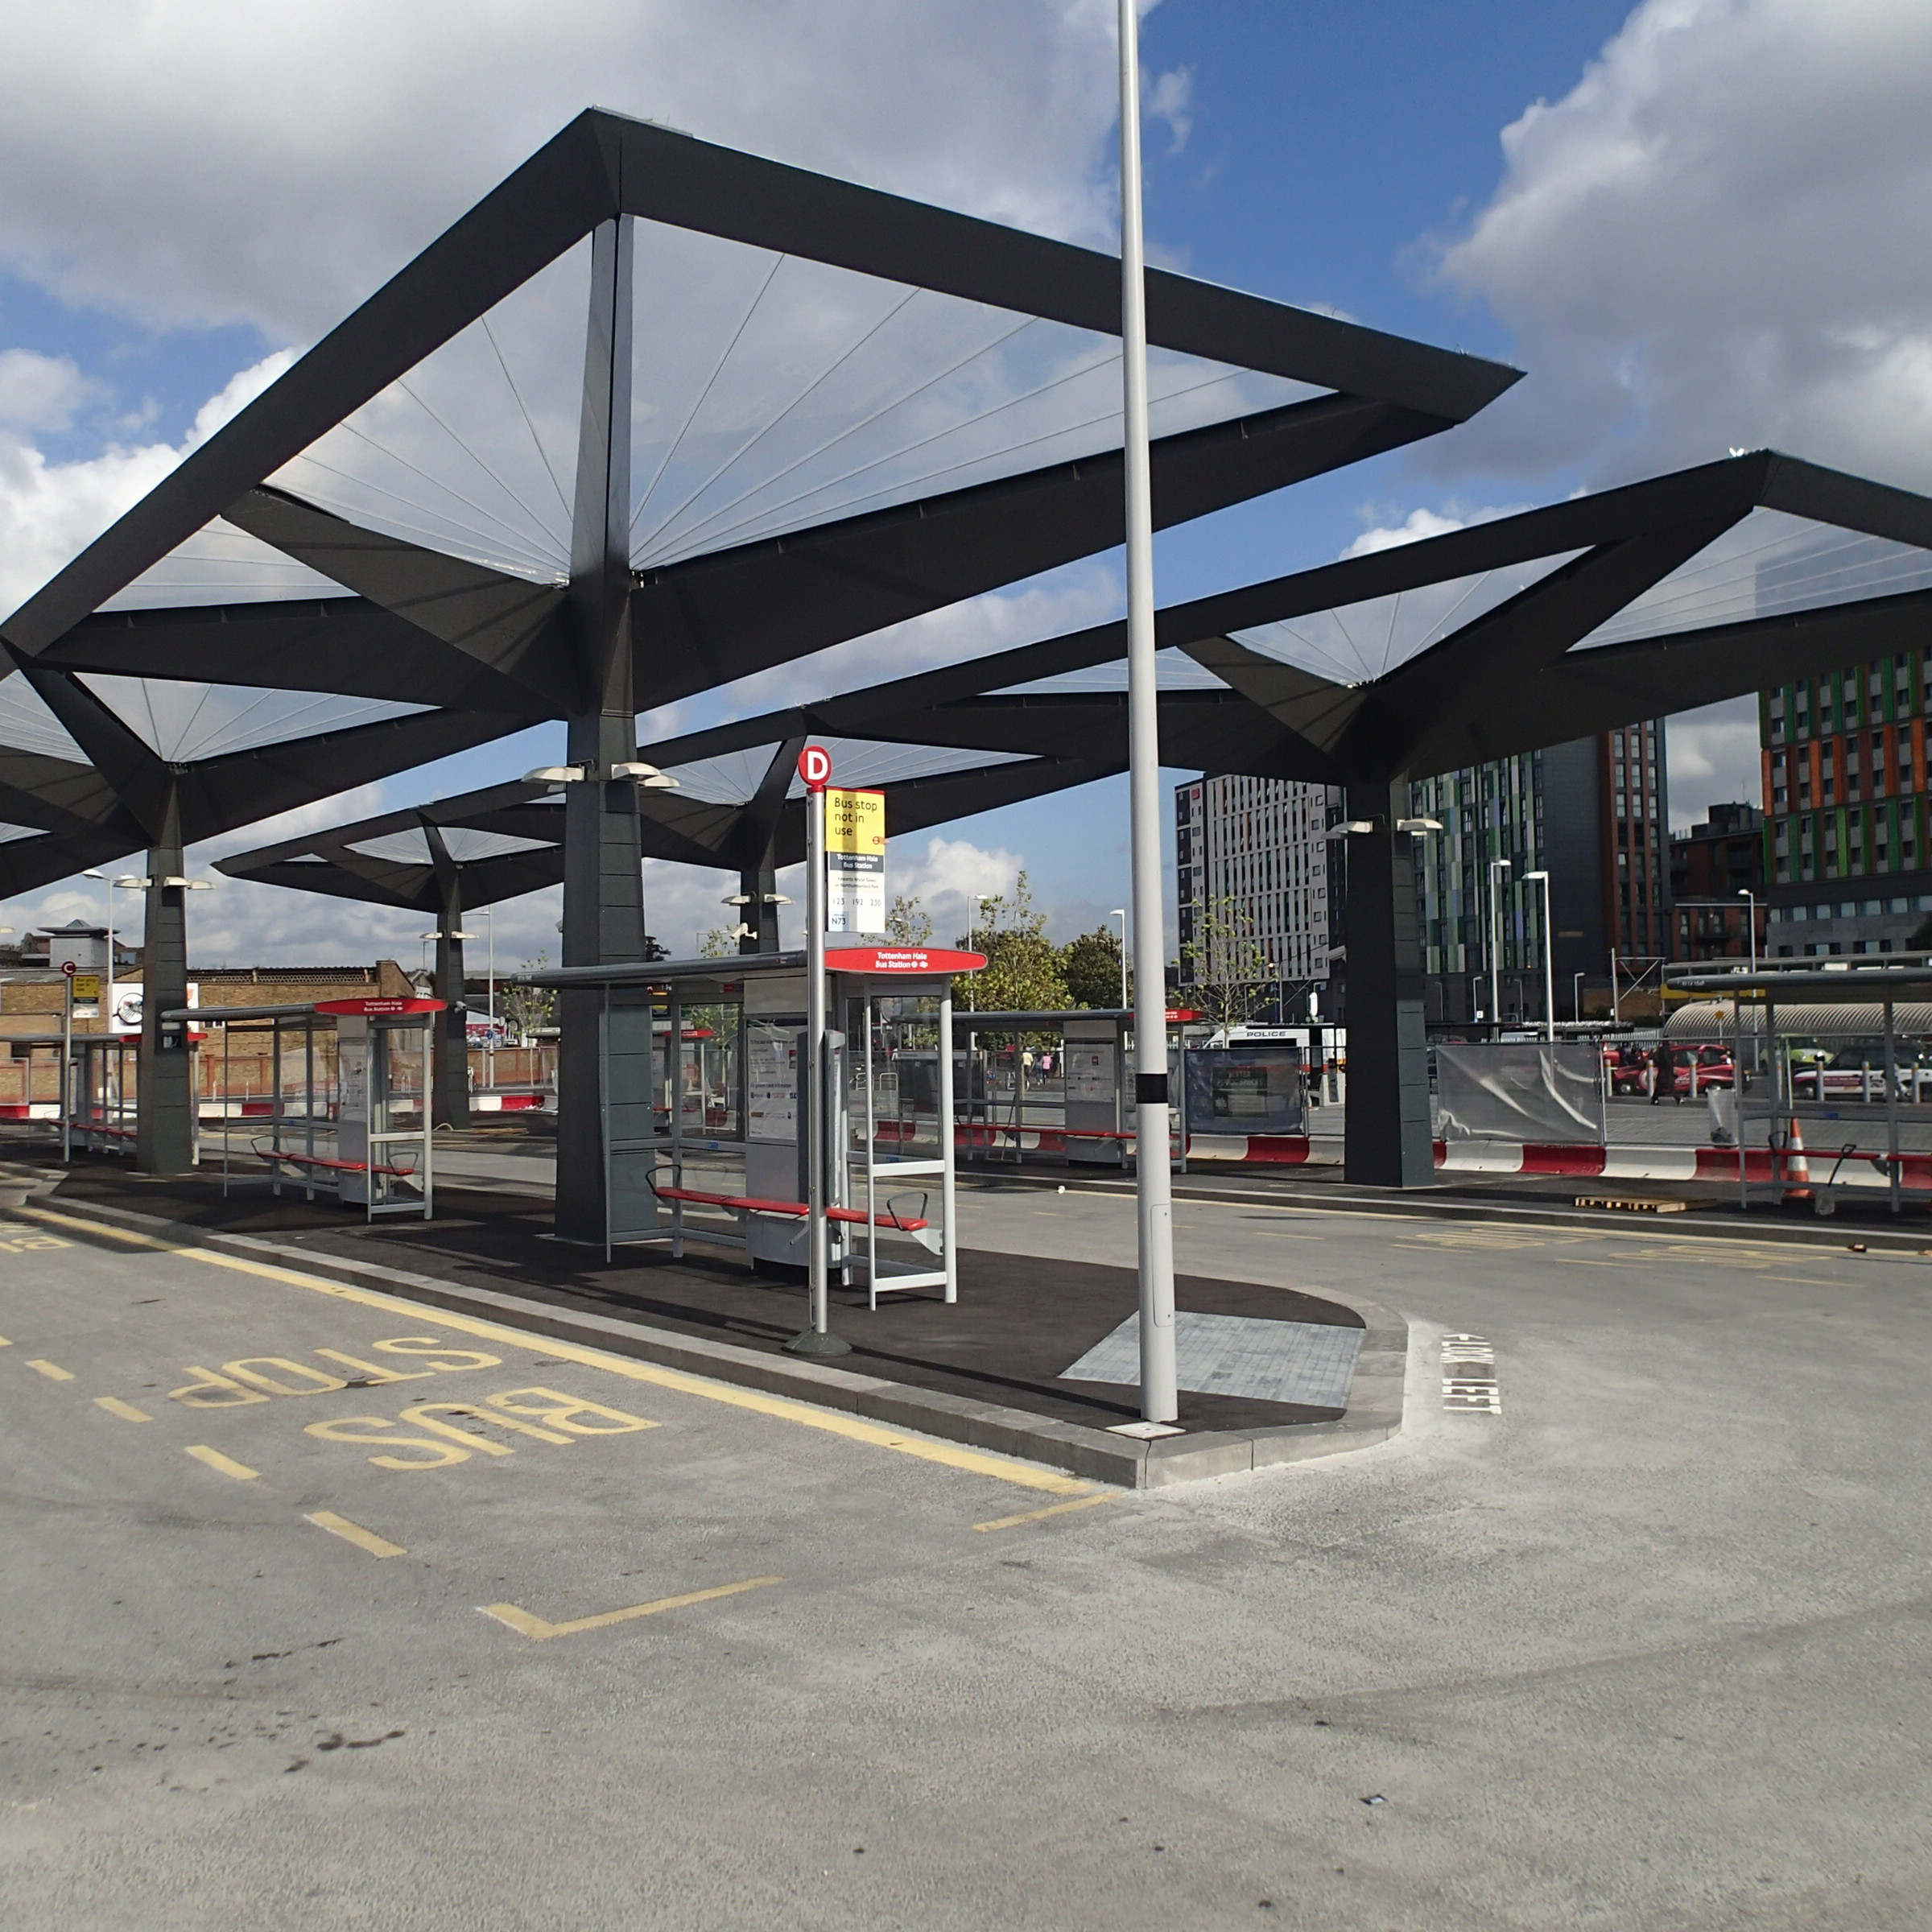 tottenham hale s new bus station the anonymous widower. Black Bedroom Furniture Sets. Home Design Ideas